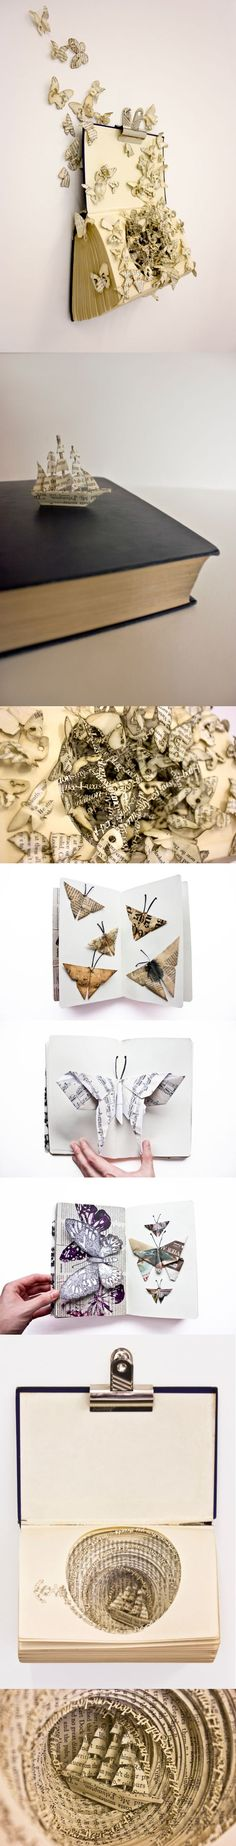 Book art by Thomas Wightman.  This is all gorgeous. Done by people withway more patience than mev #paper #butterflies #wallart